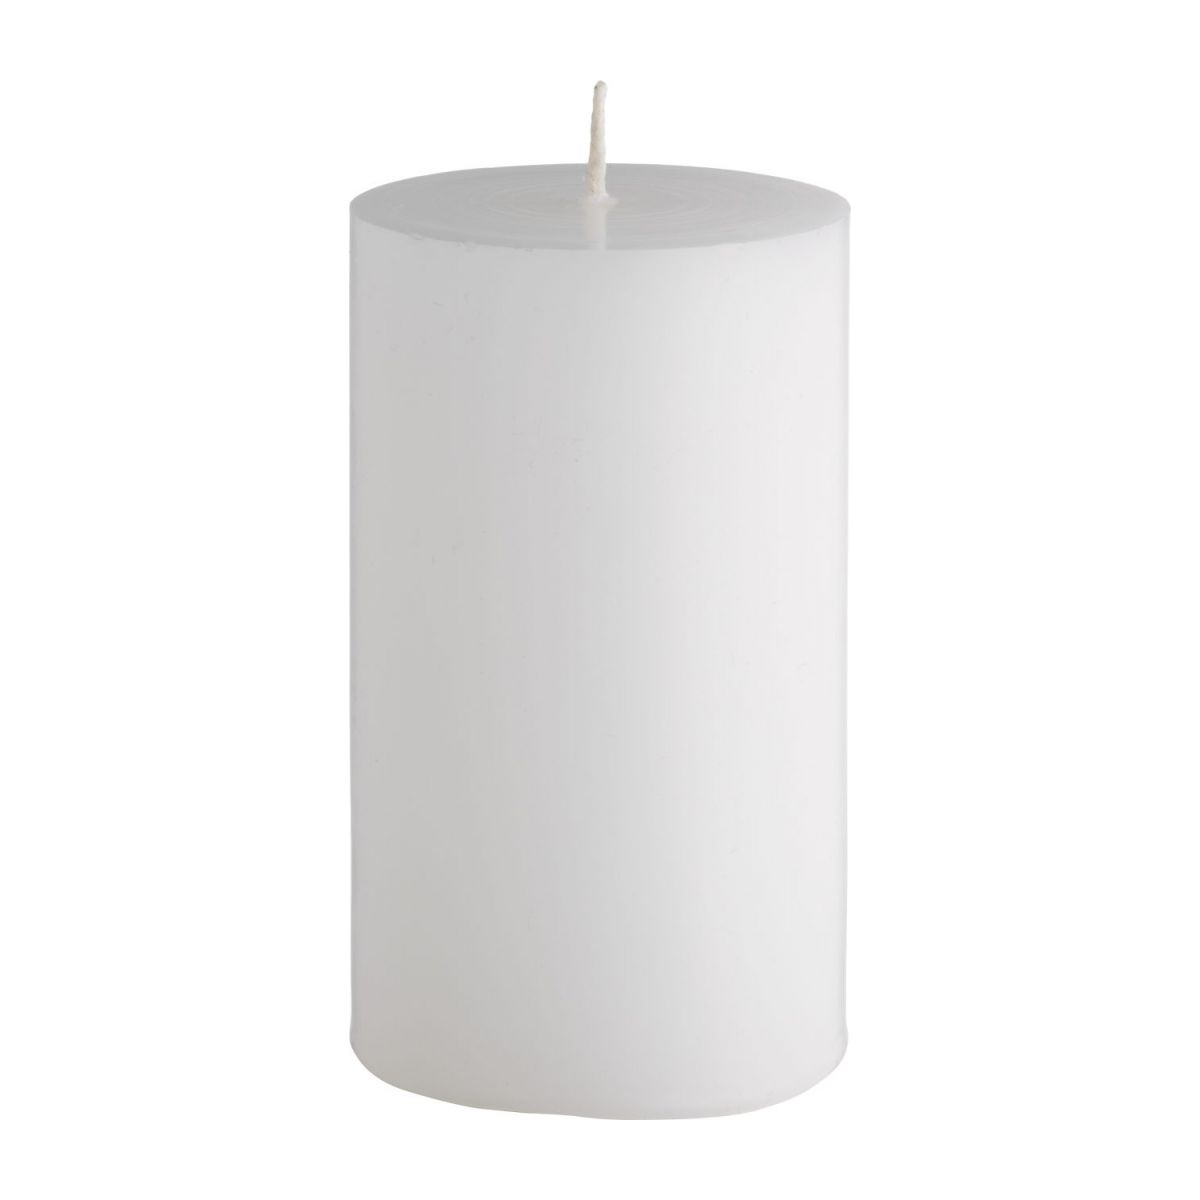 Bougie cylindre 10cm blanche n°1